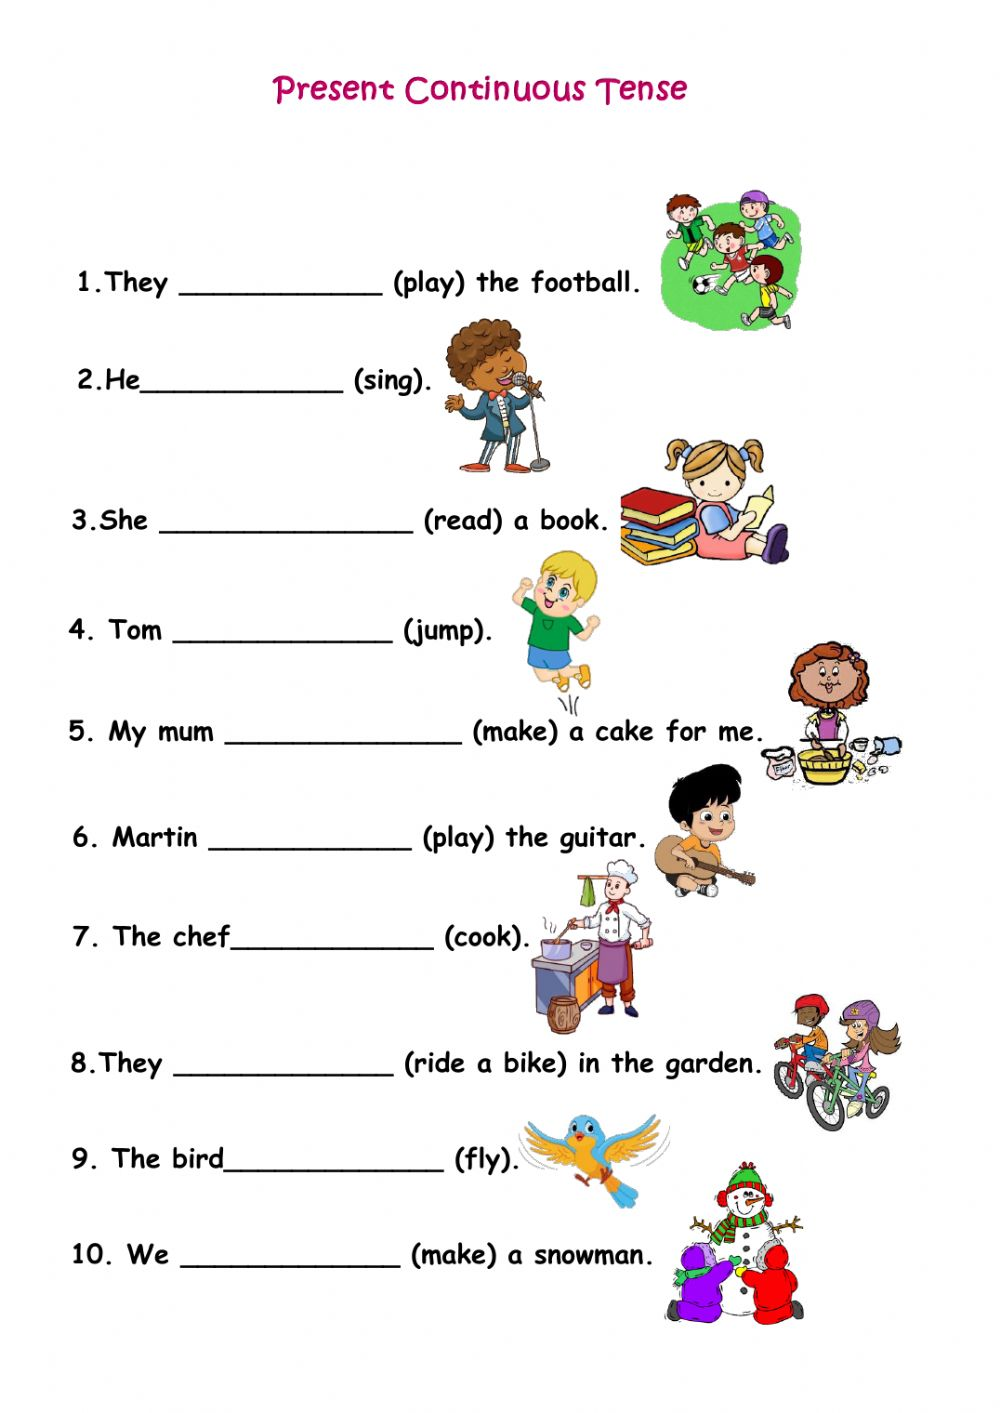 hight resolution of Present Continuous Tense interactive activity for Grade 2